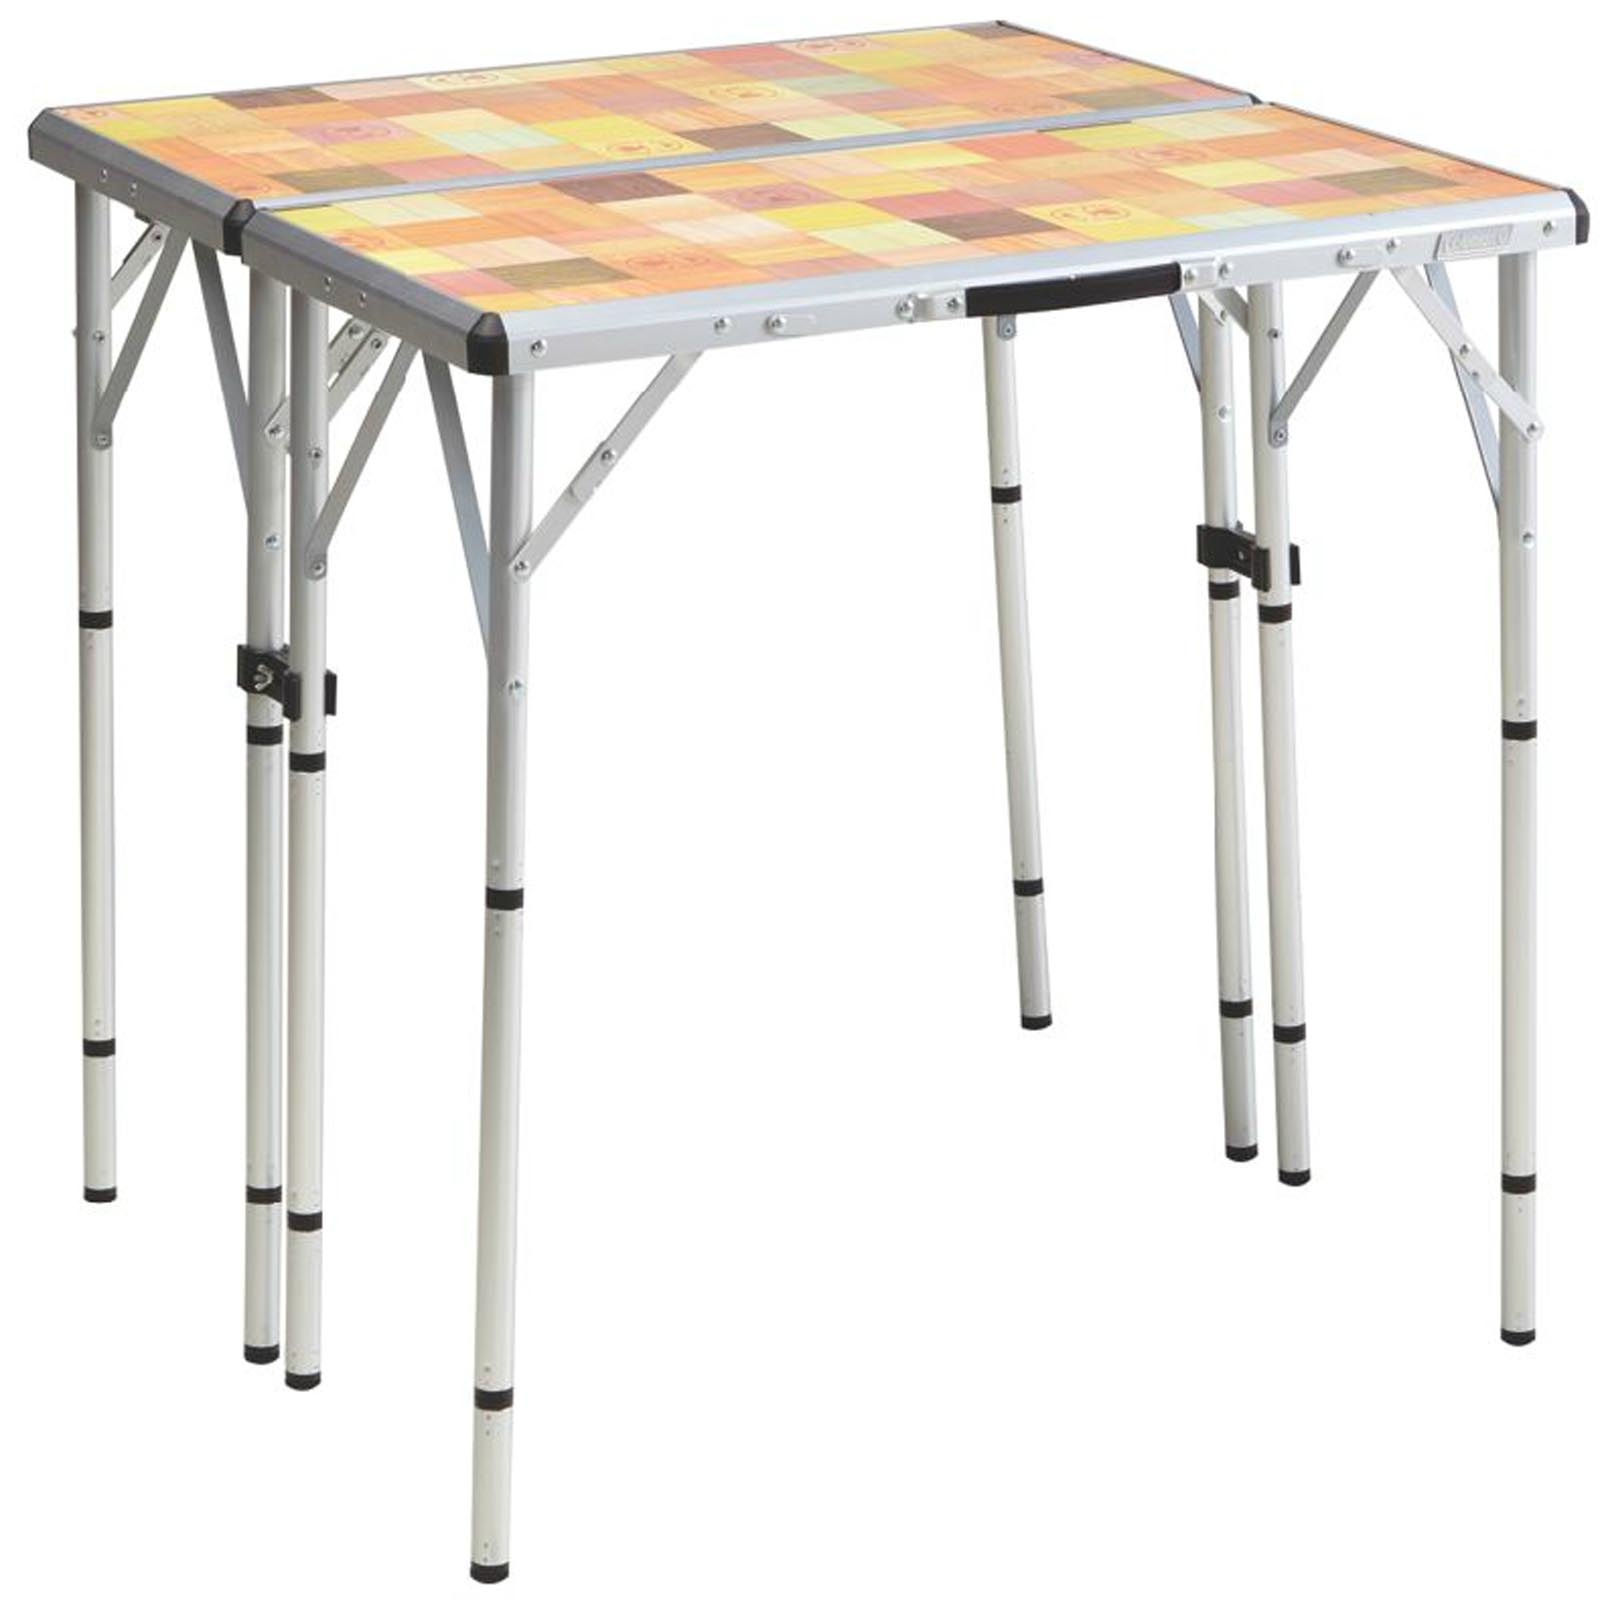 NEW! COLEMAN Pack-Away 4-in-1 Portable Mosaic Camping Tailgating Picnic Table